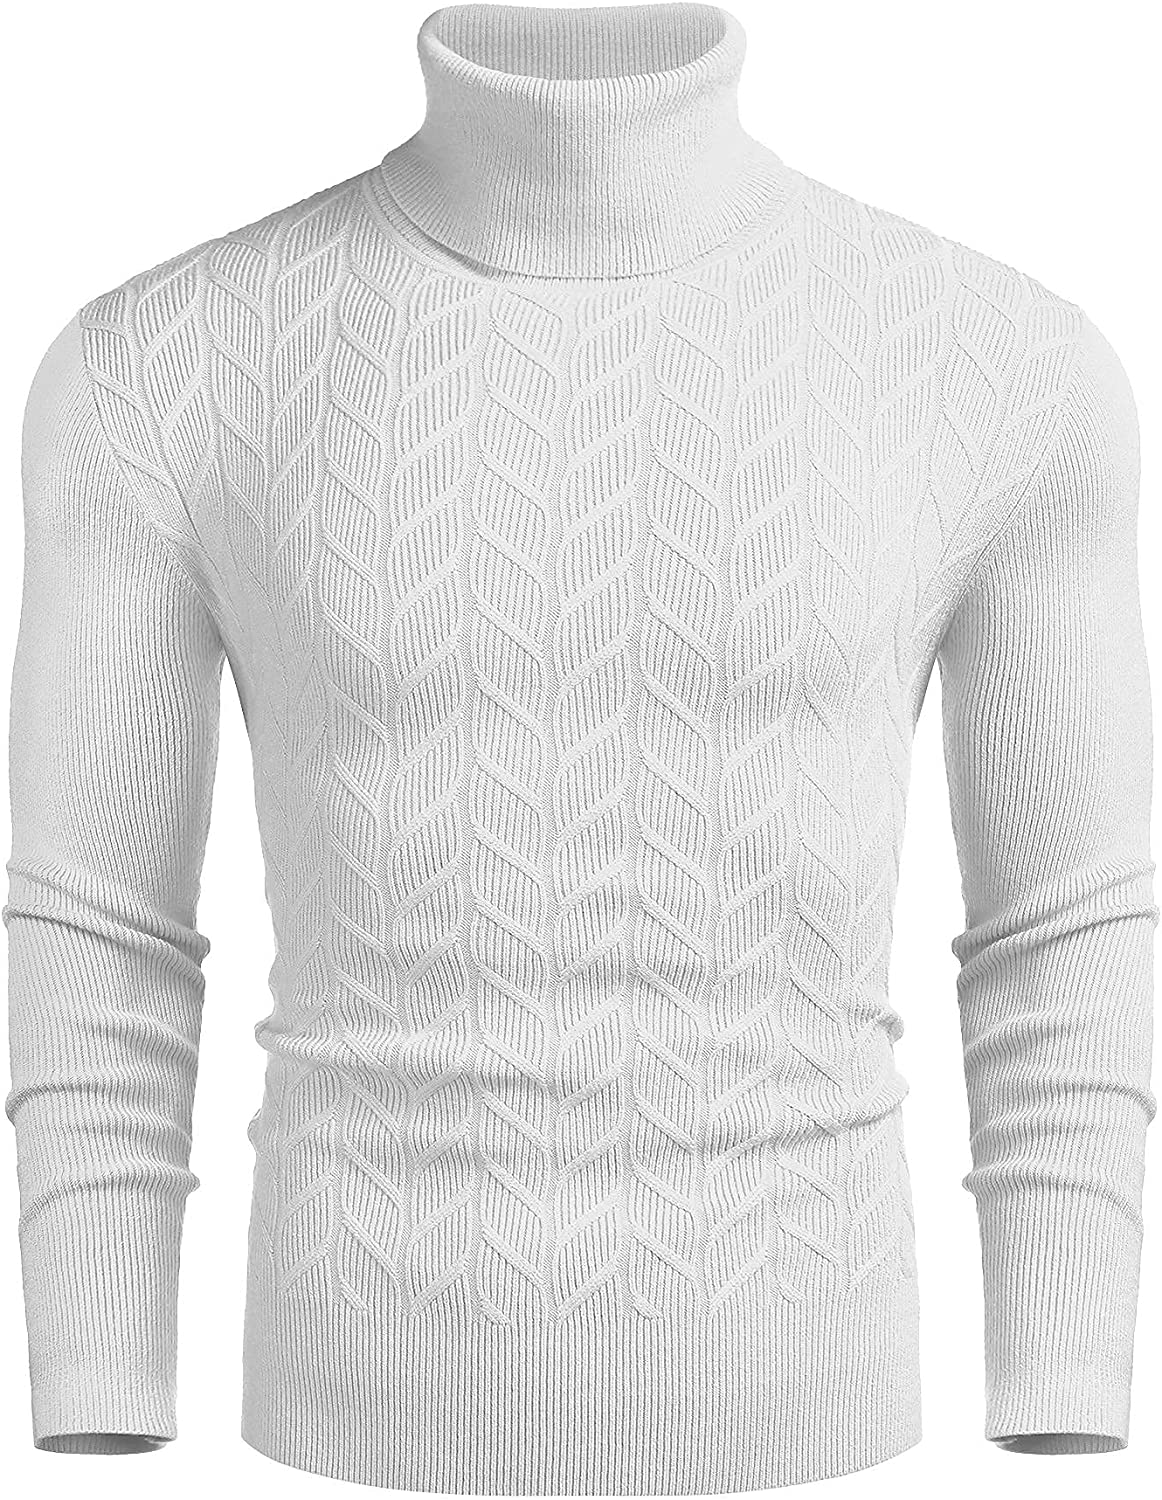 COOFANDY Men's Slim Fit Turtleneck Sweater Casual Pullover Sweater Basic Twist Patterned Knitted Sweater